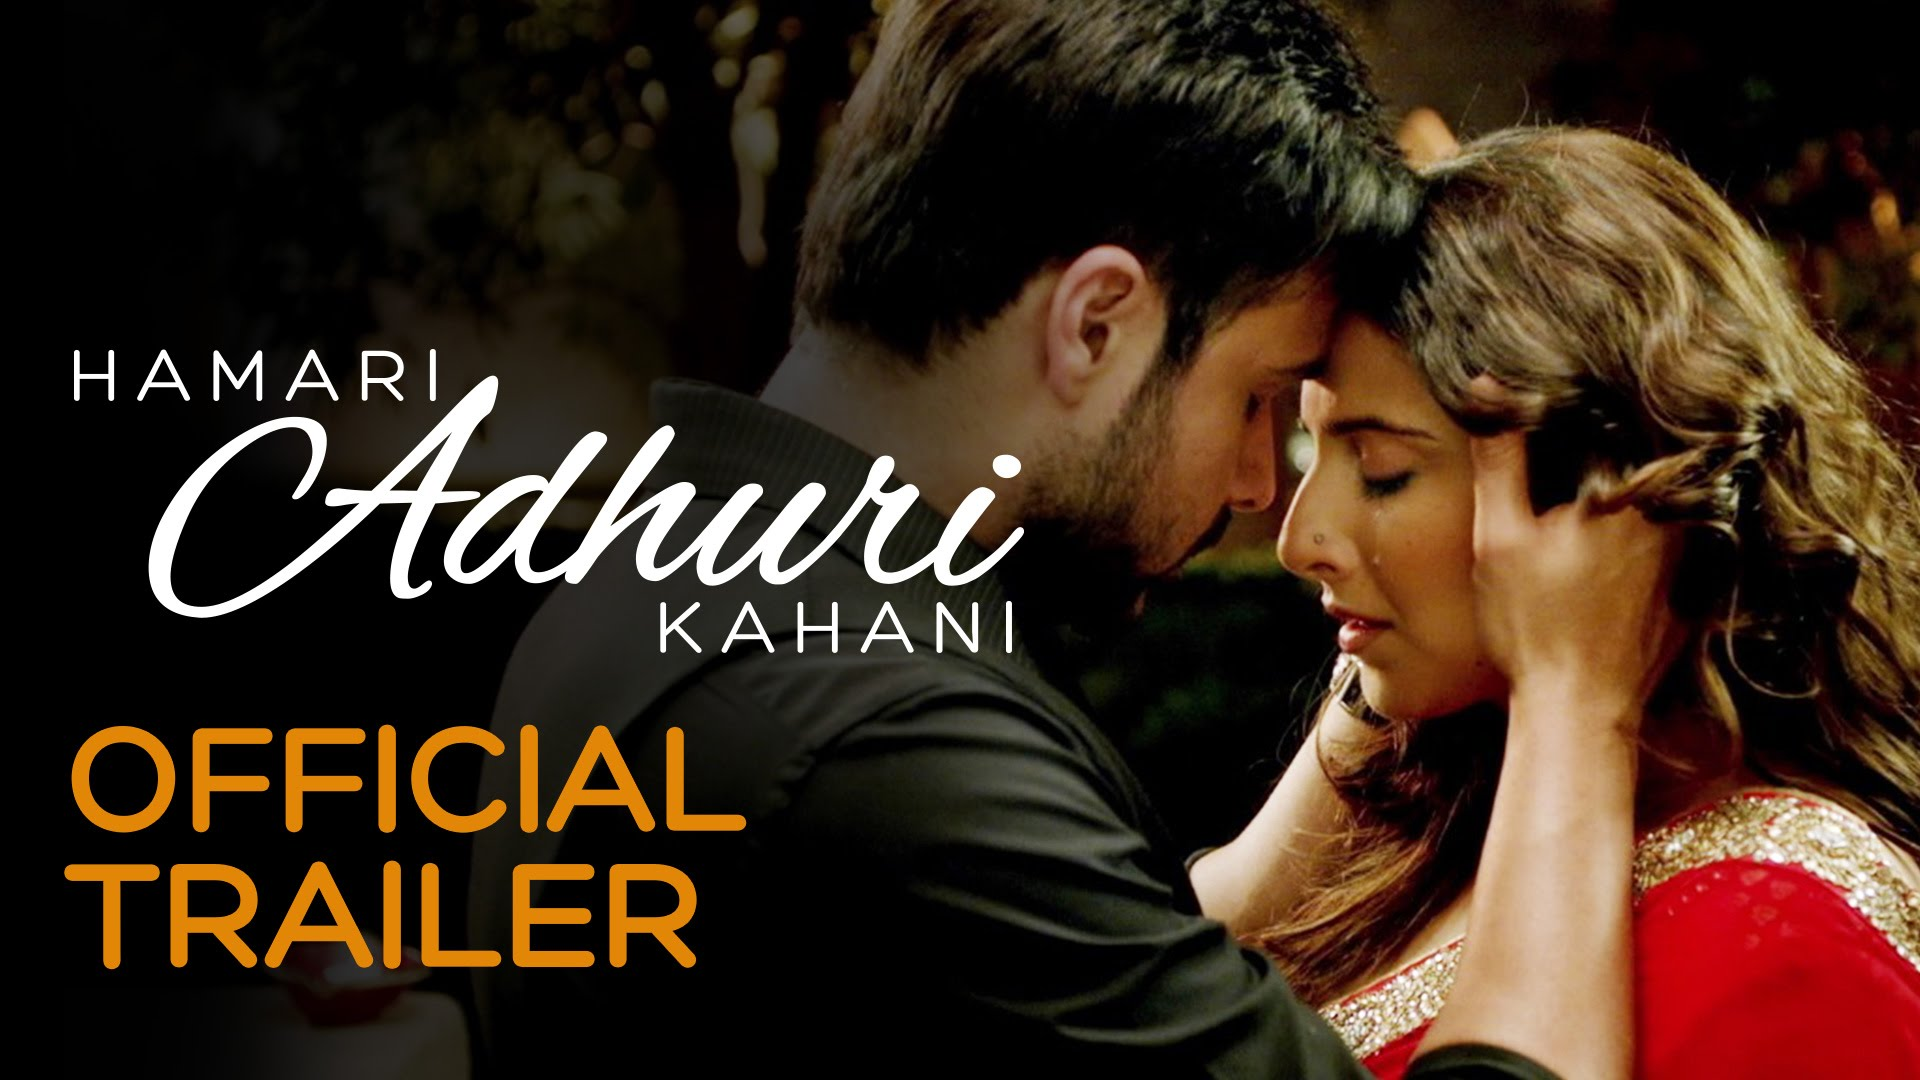 Hamari Adhuri Kahani Trailer | Official Theatrical Trailer